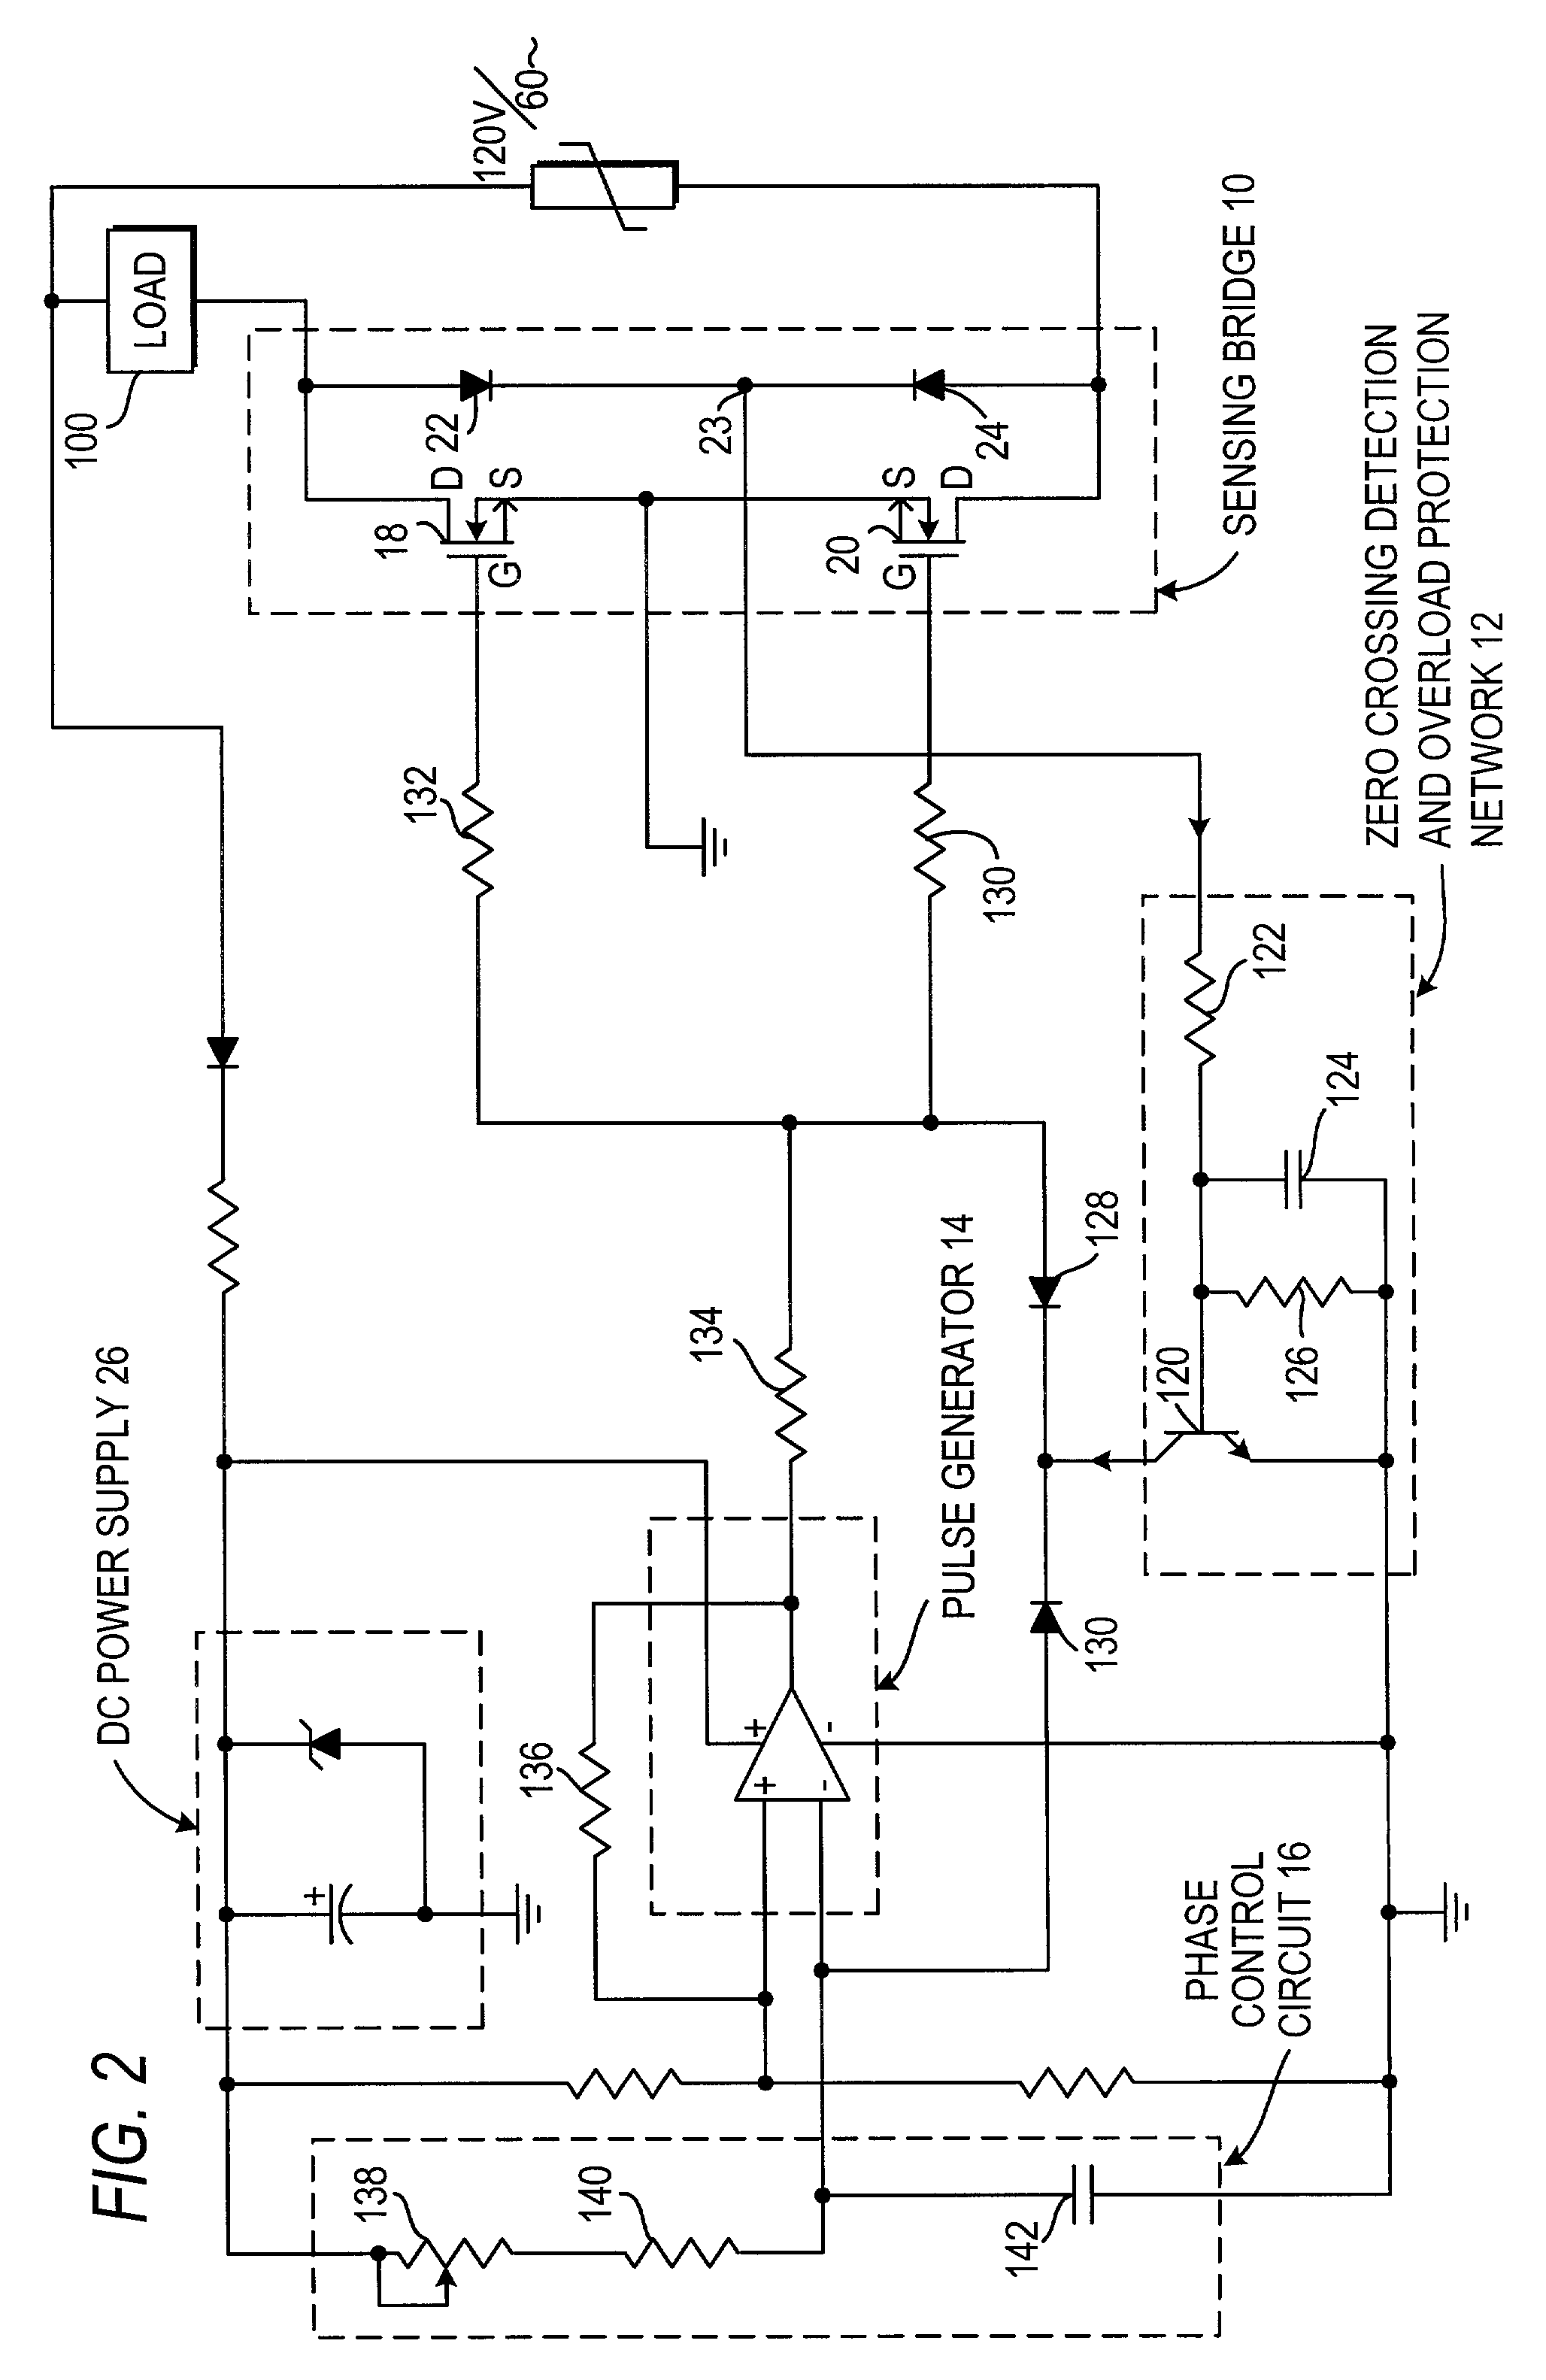 Patent Us7242563 Reverse Phase Control Power Switching Circuit Mosfet Short Protection Need Help Drawing